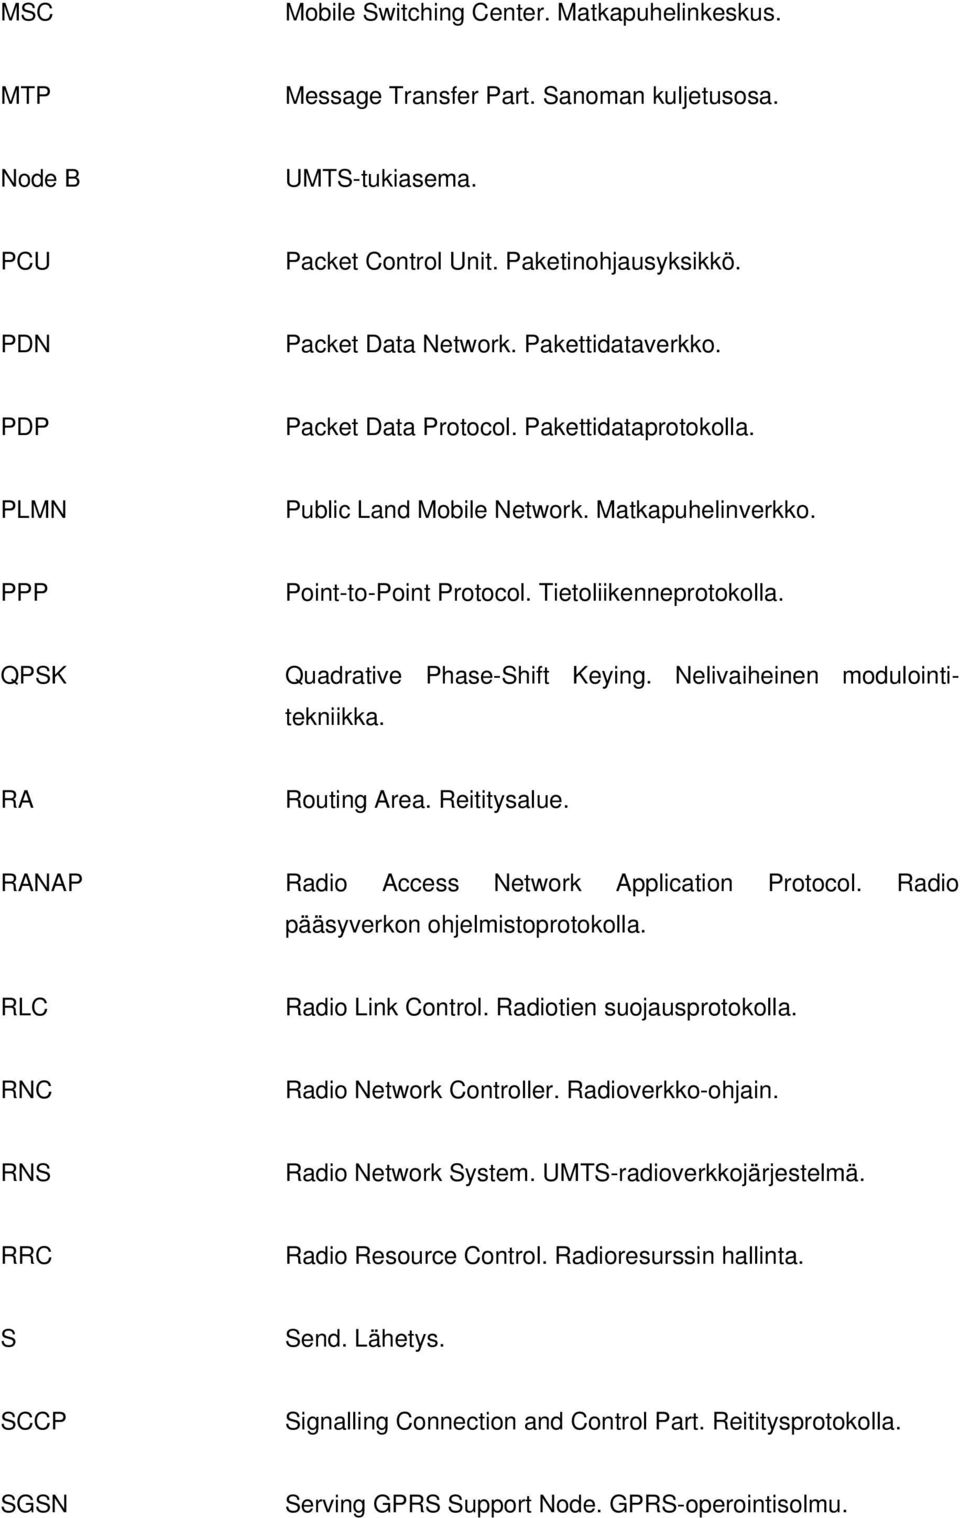 QPSK Quadrative Phase-Shift Keying. Nelivaiheinen modulointitekniikka. RA Routing Area. Reititysalue. RANAP Radio Access Network Application Protocol. Radio pääsyverkon ohjelmistoprotokolla.